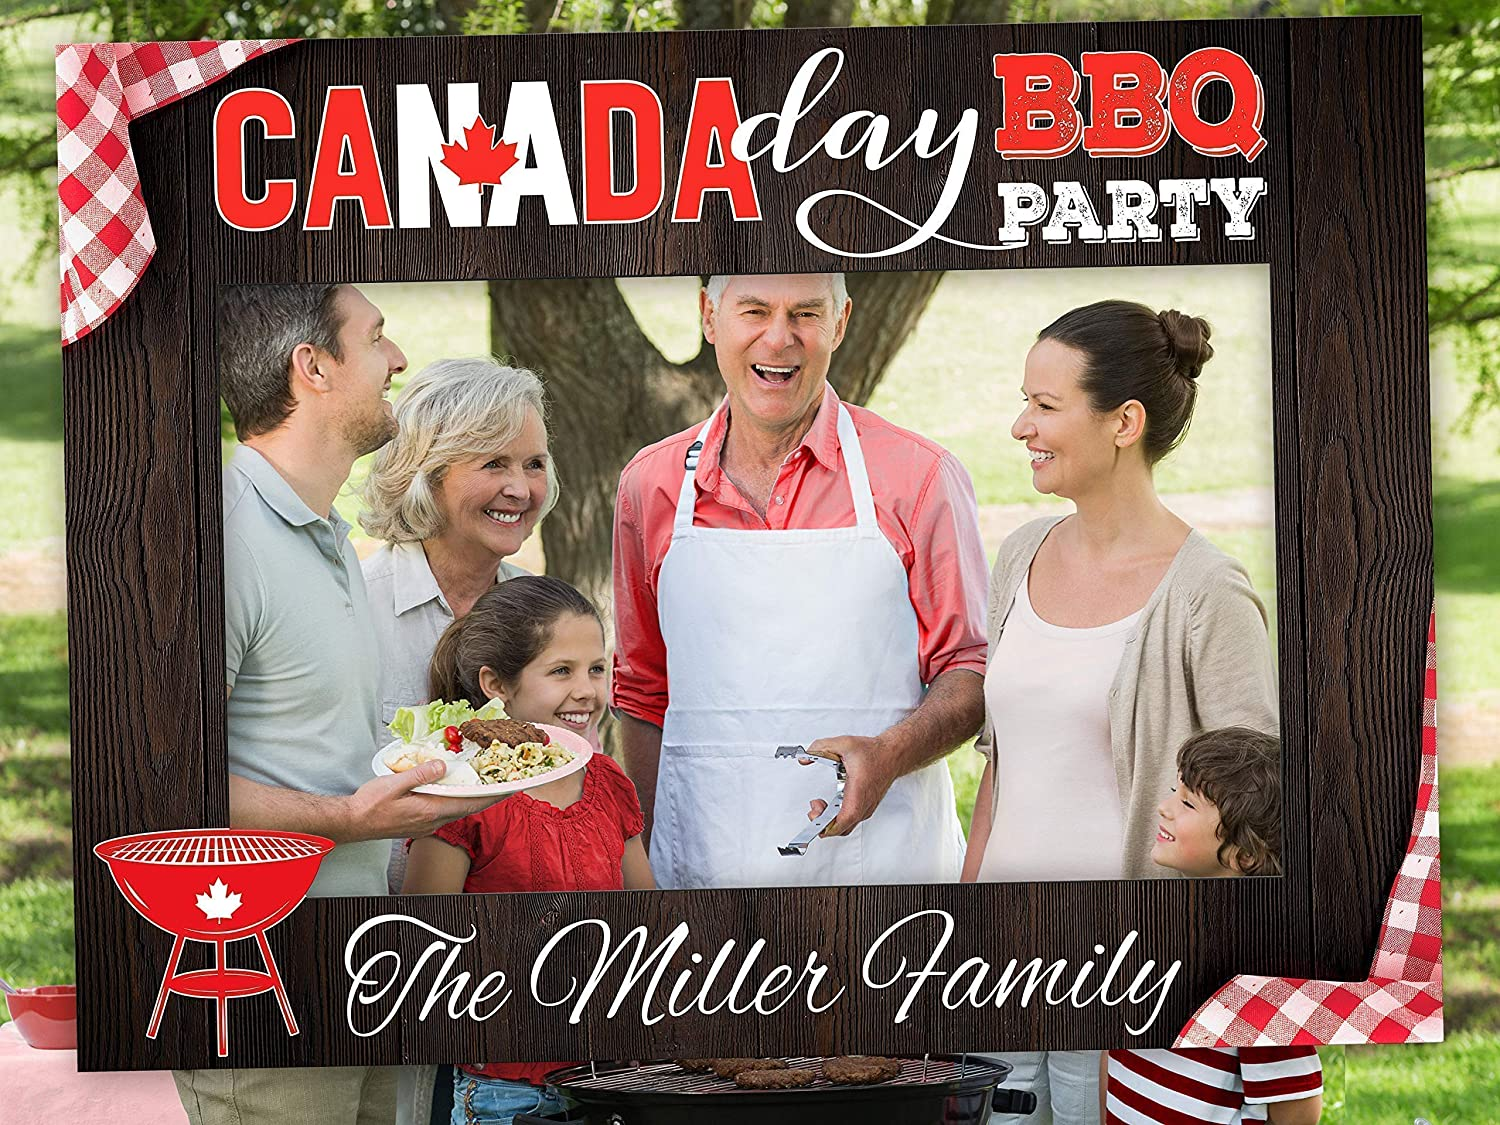 Custom Photo Booth Props 2020 decoration Canadian Party Decoration Home Decoration Canada Day Decorations Canada Day Photo Booth Party Supplies Personalized Frame Size 36x24 48x36